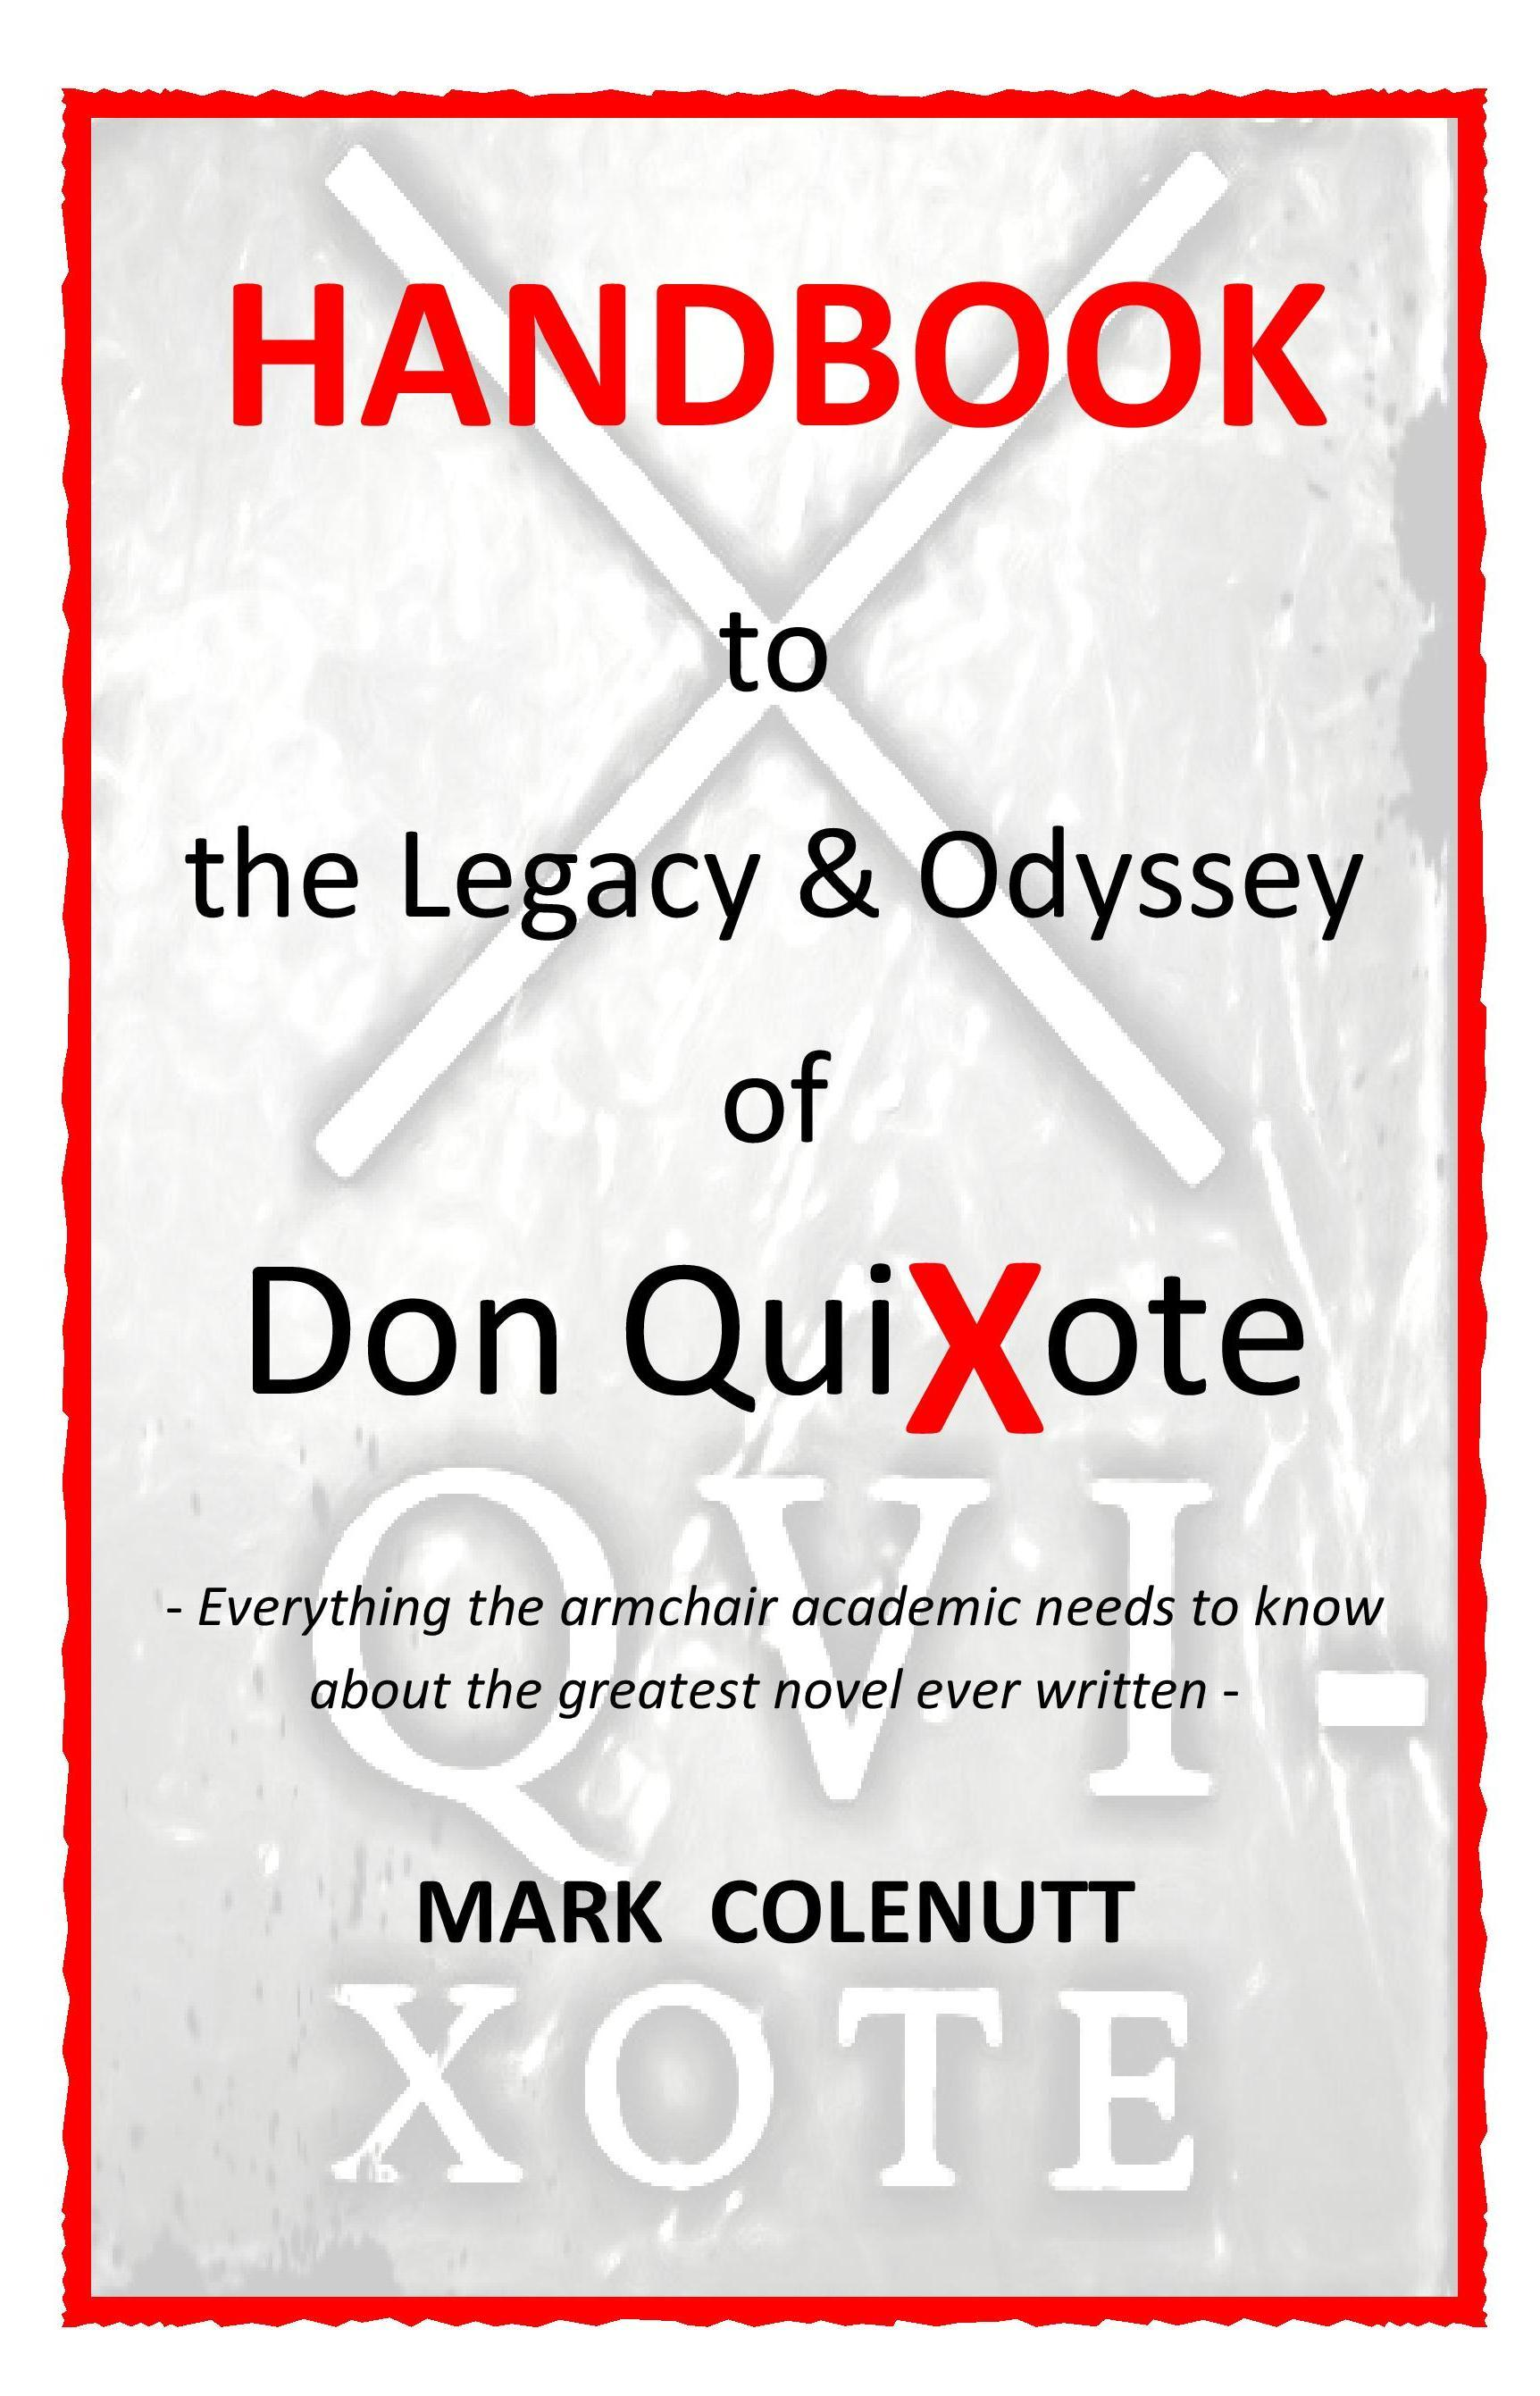 Mark Colenutt - Handbook to the Legacy & Odyssey of Don QuiXote: Everything the armchair academic needs to know about the greatest novel ever written